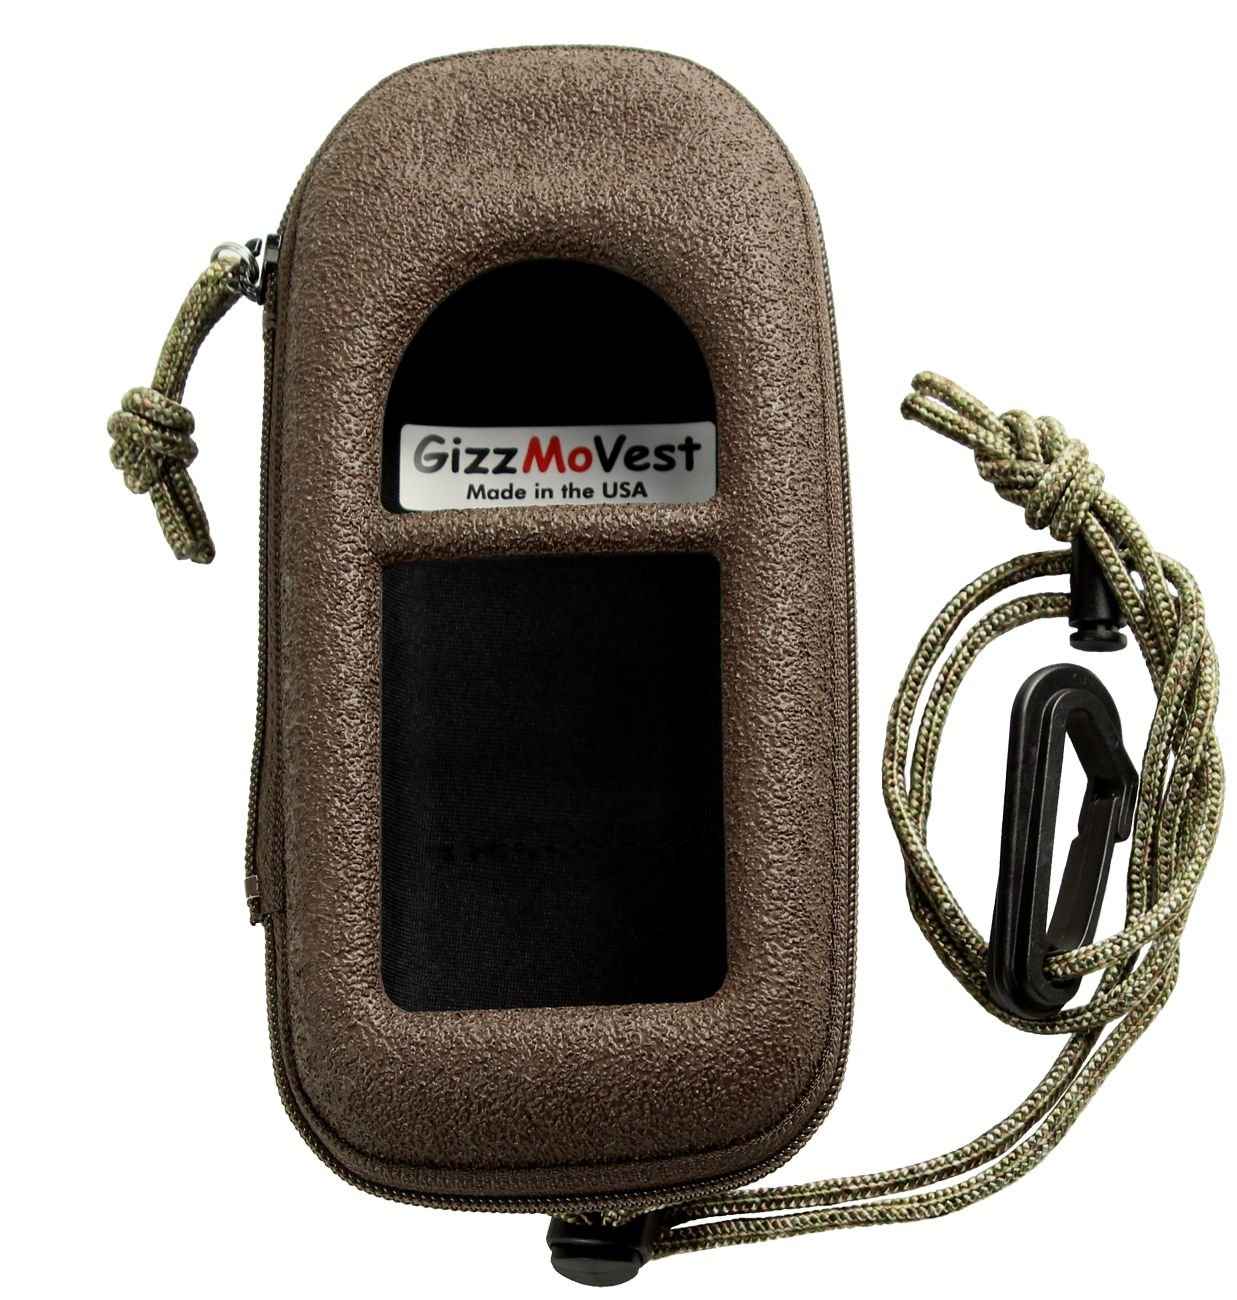 Case Cover compatible with GARMIN 78 78sc 78s, Made in the USA by GizzMoVest LLC Cof. by GizzMoVest LLC